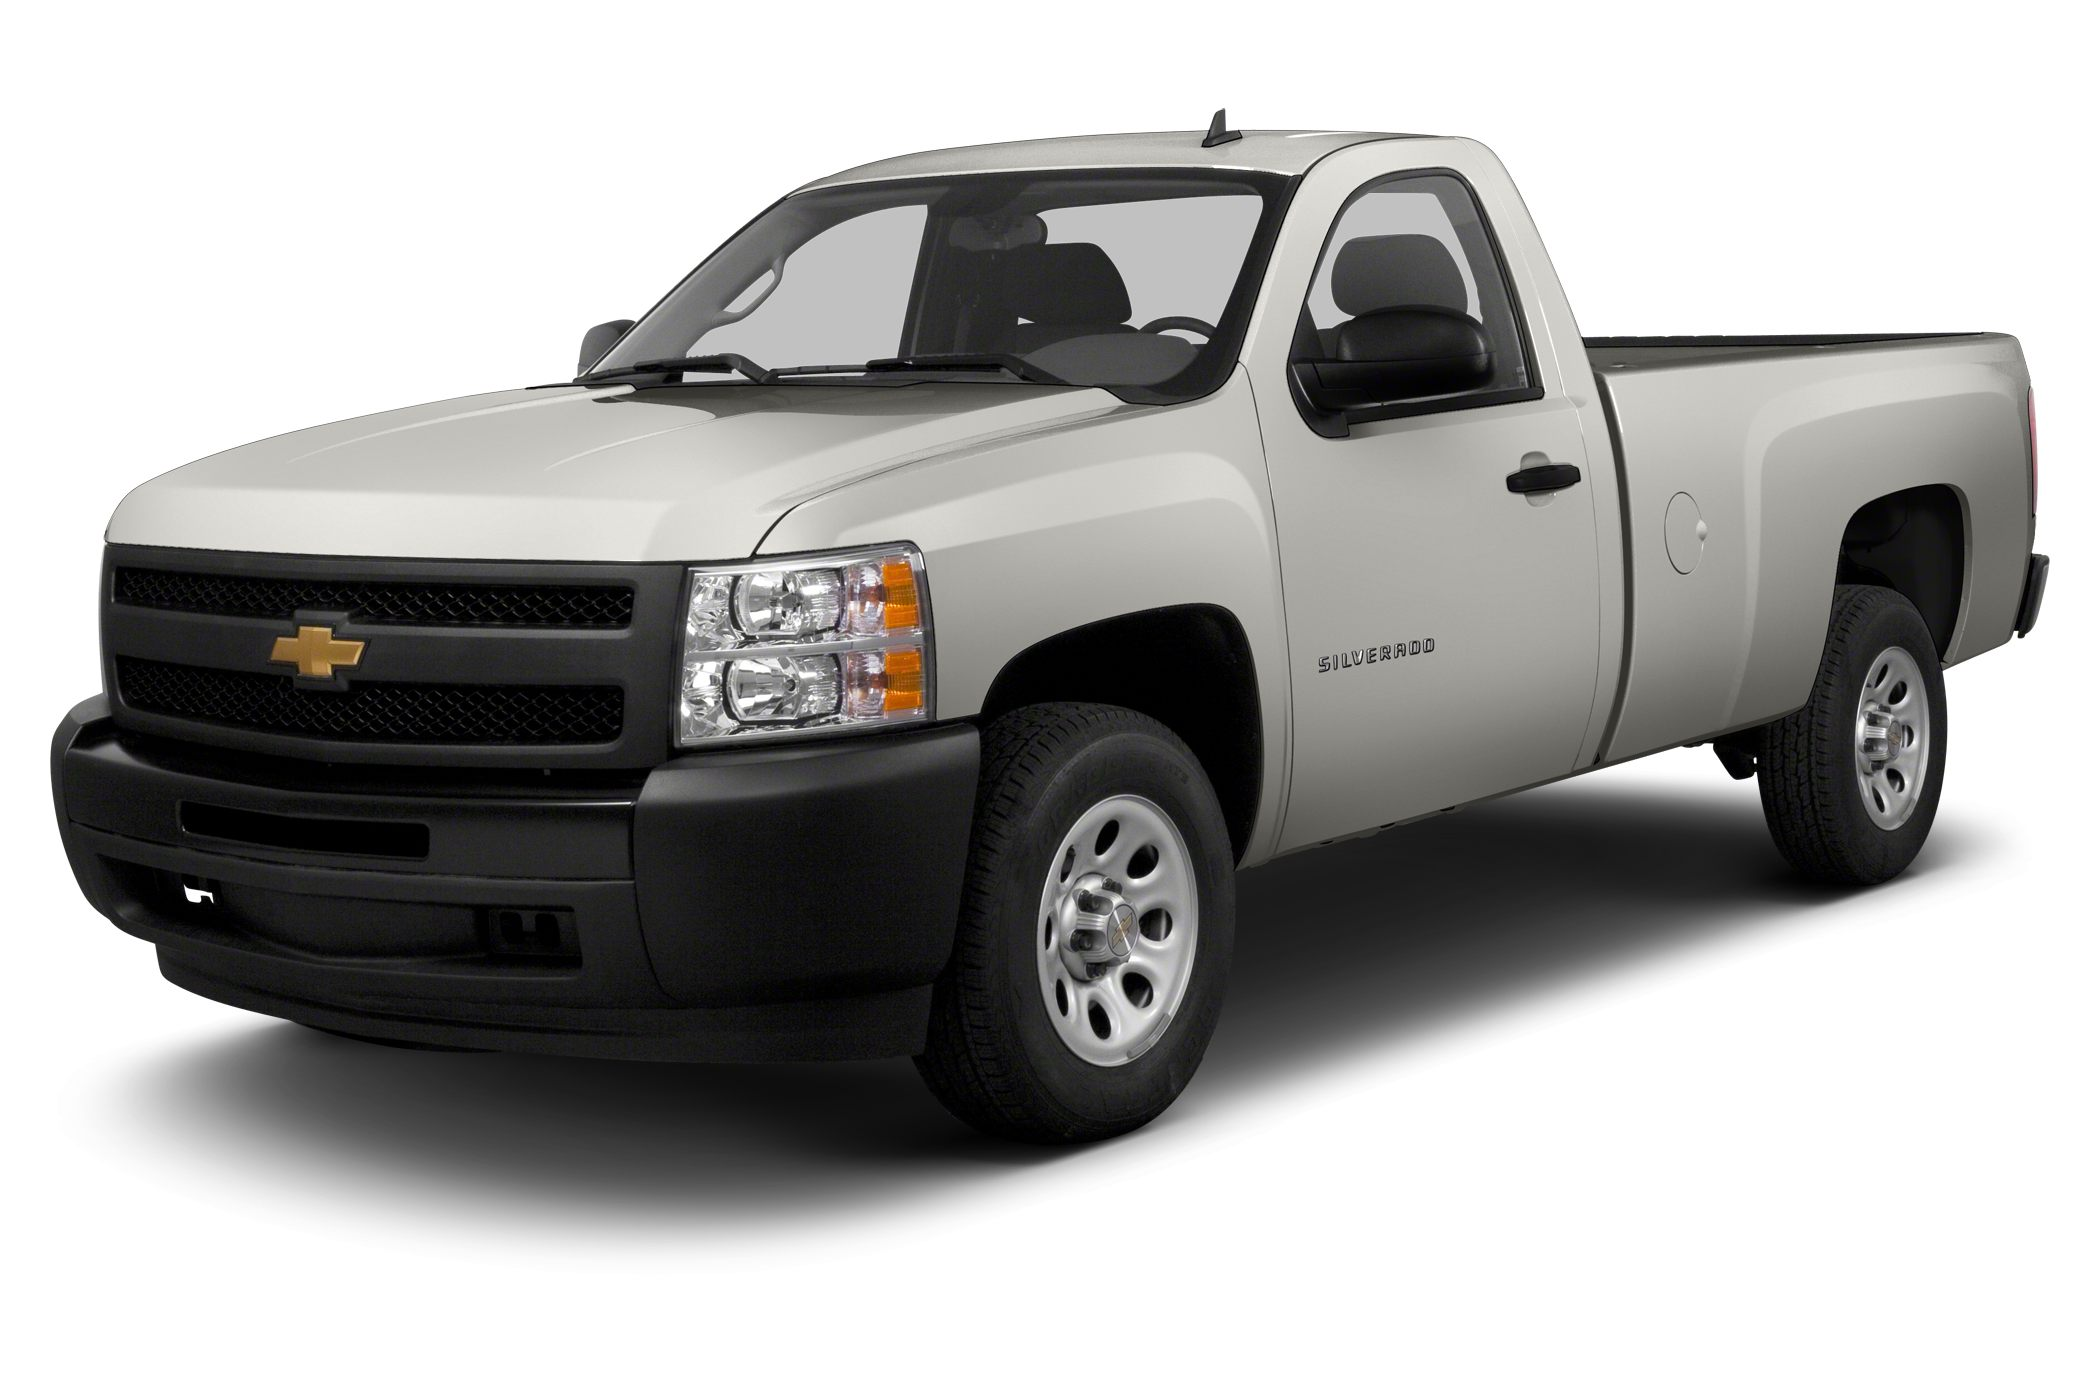 2013 Chevrolet Silverado 1500 LT Crew Cab Pickup for sale in High Point for $33,500 with 19,007 miles